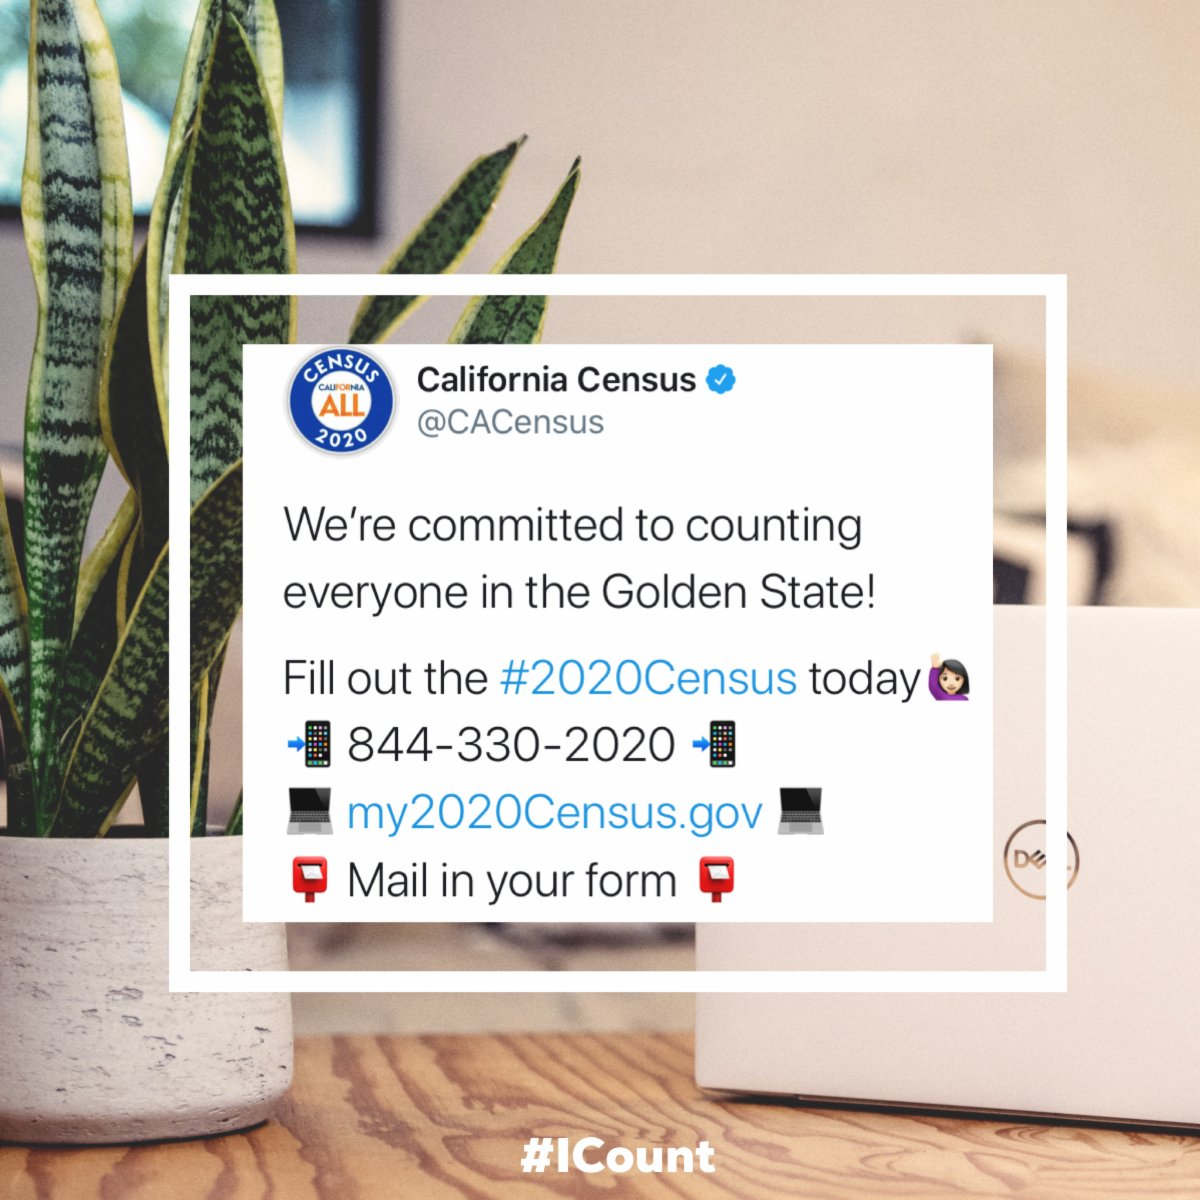 ¡Complete el Censo hoy! ¡Vaya a  ahora! Fill out the Census today! Go to  now! Link in Bio.  @CACompleteCount @CACensus #2020Census #CompleteCount #ICount #CACensus2020 #CACompleteCount #EveryoneCounts